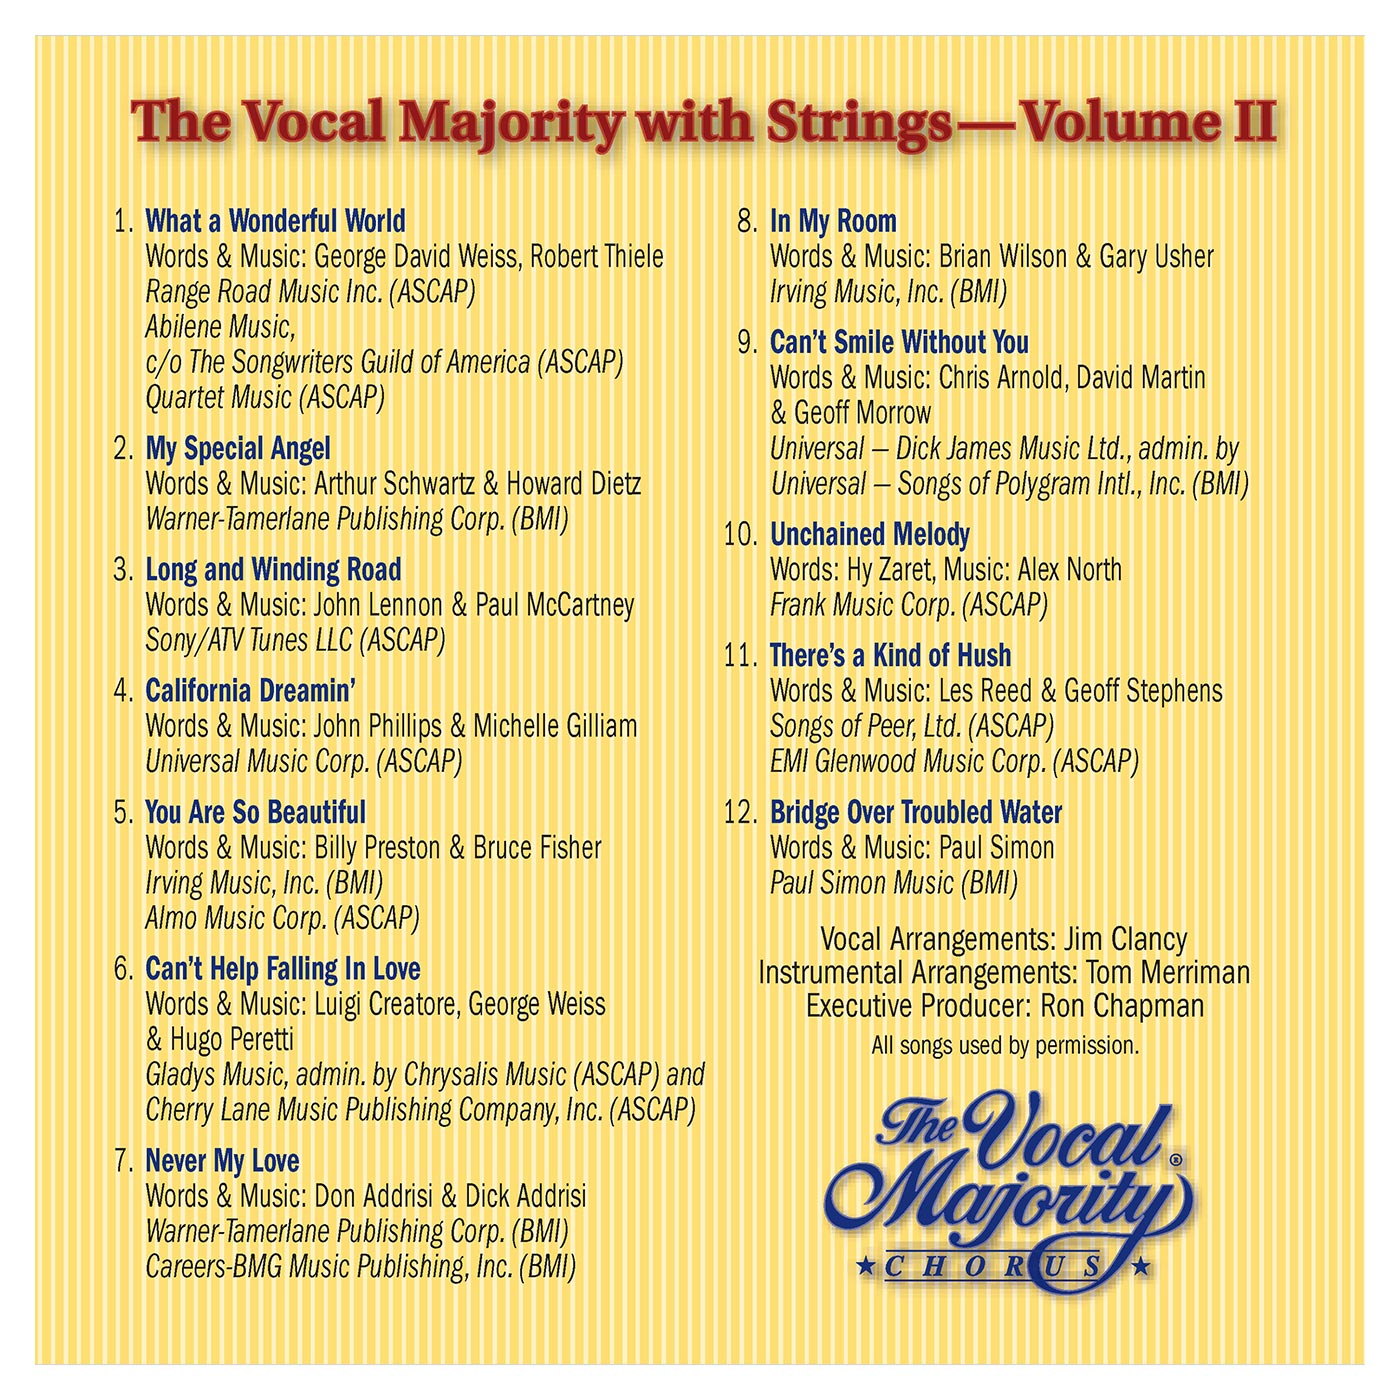 Booklet Outside Back Panel: VM With Strings Vol. 2